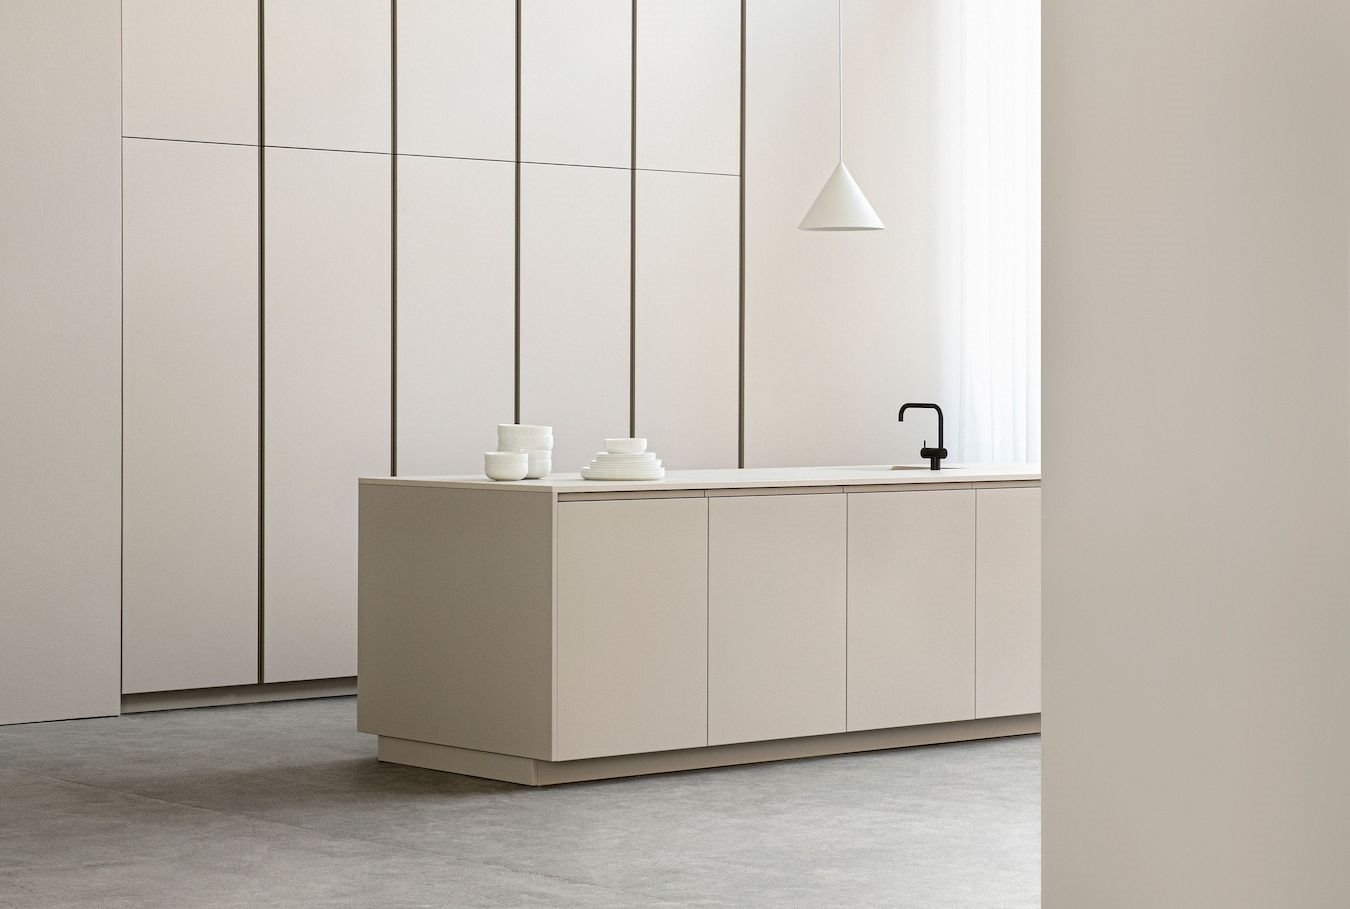 cocina blanca profile normarchitects